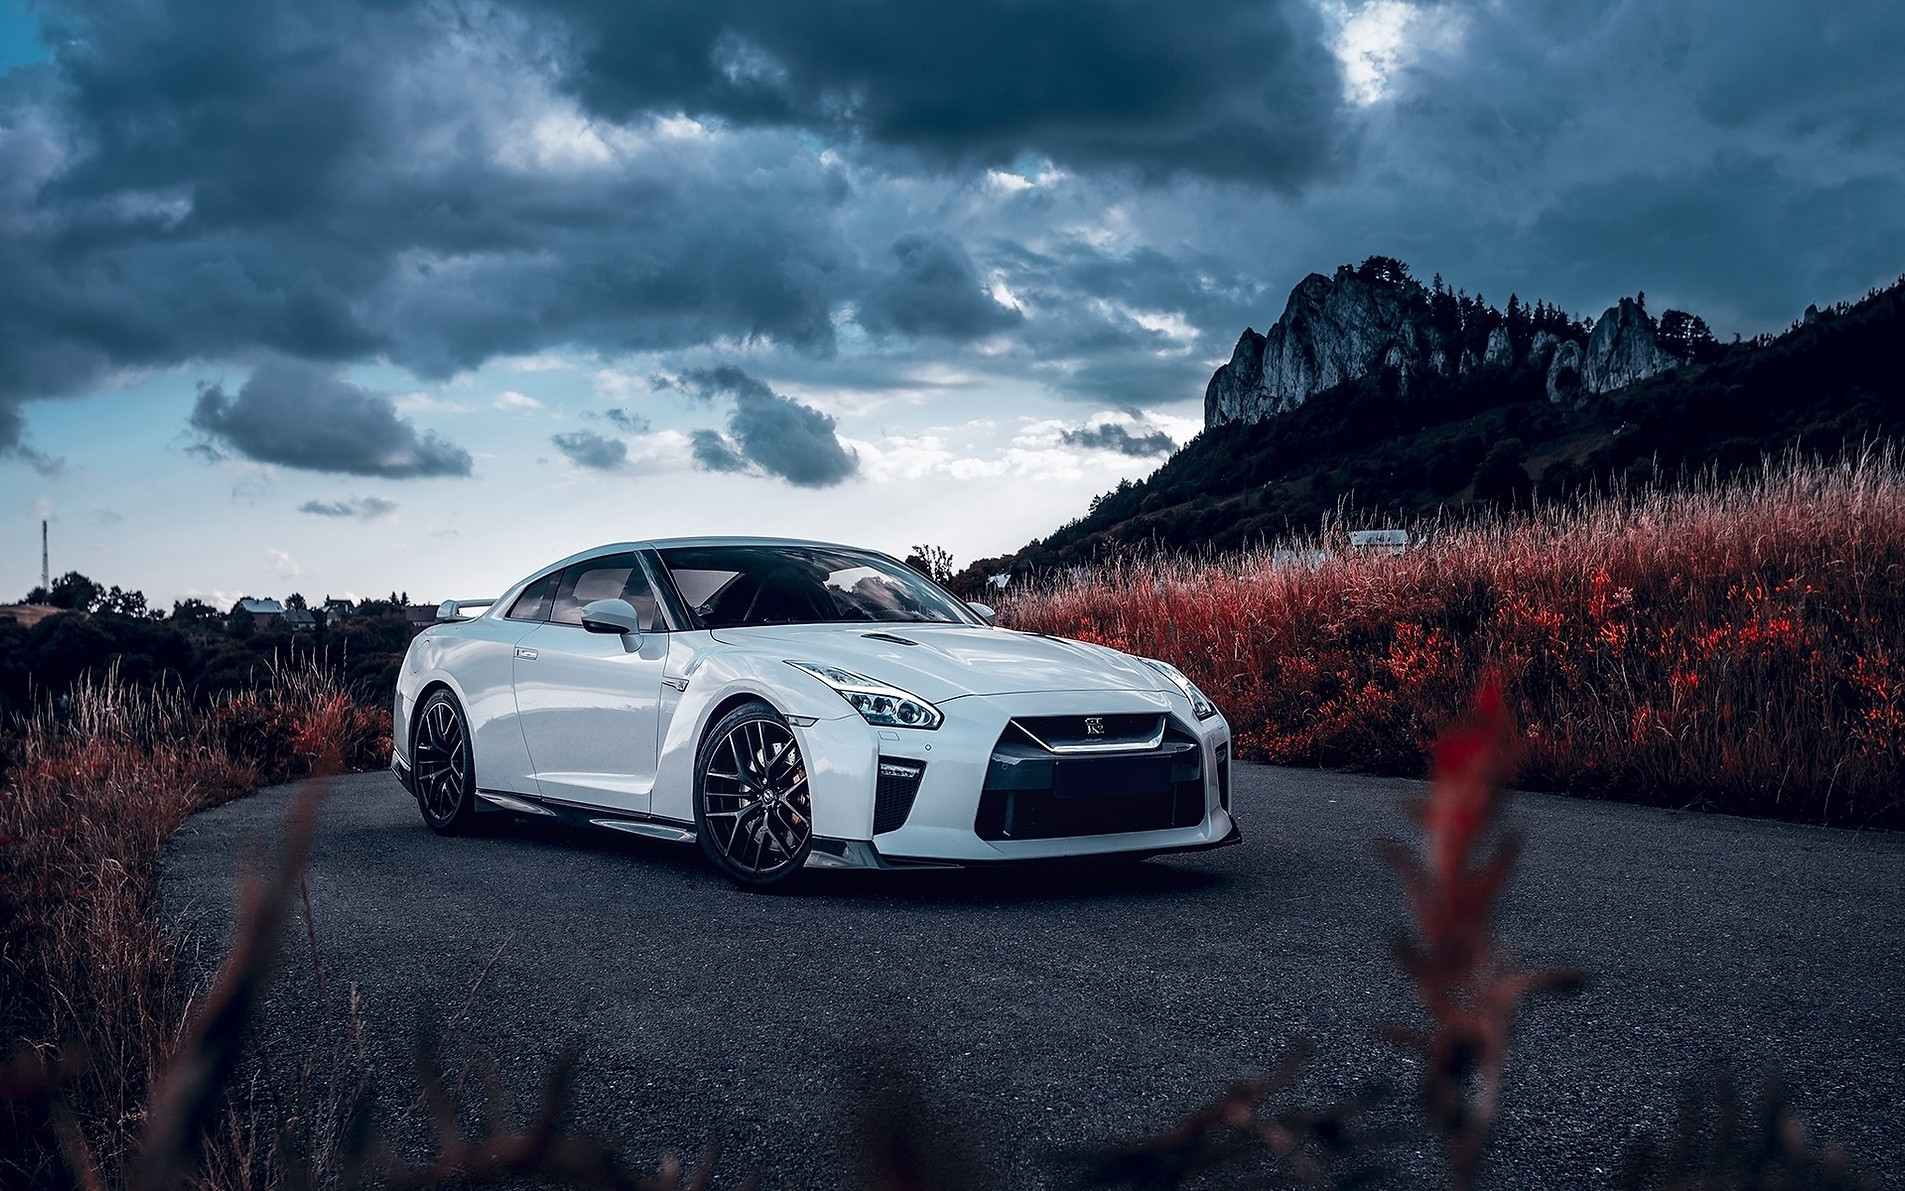 r35-nissan-gt-r-tuning-supercars-tunned-